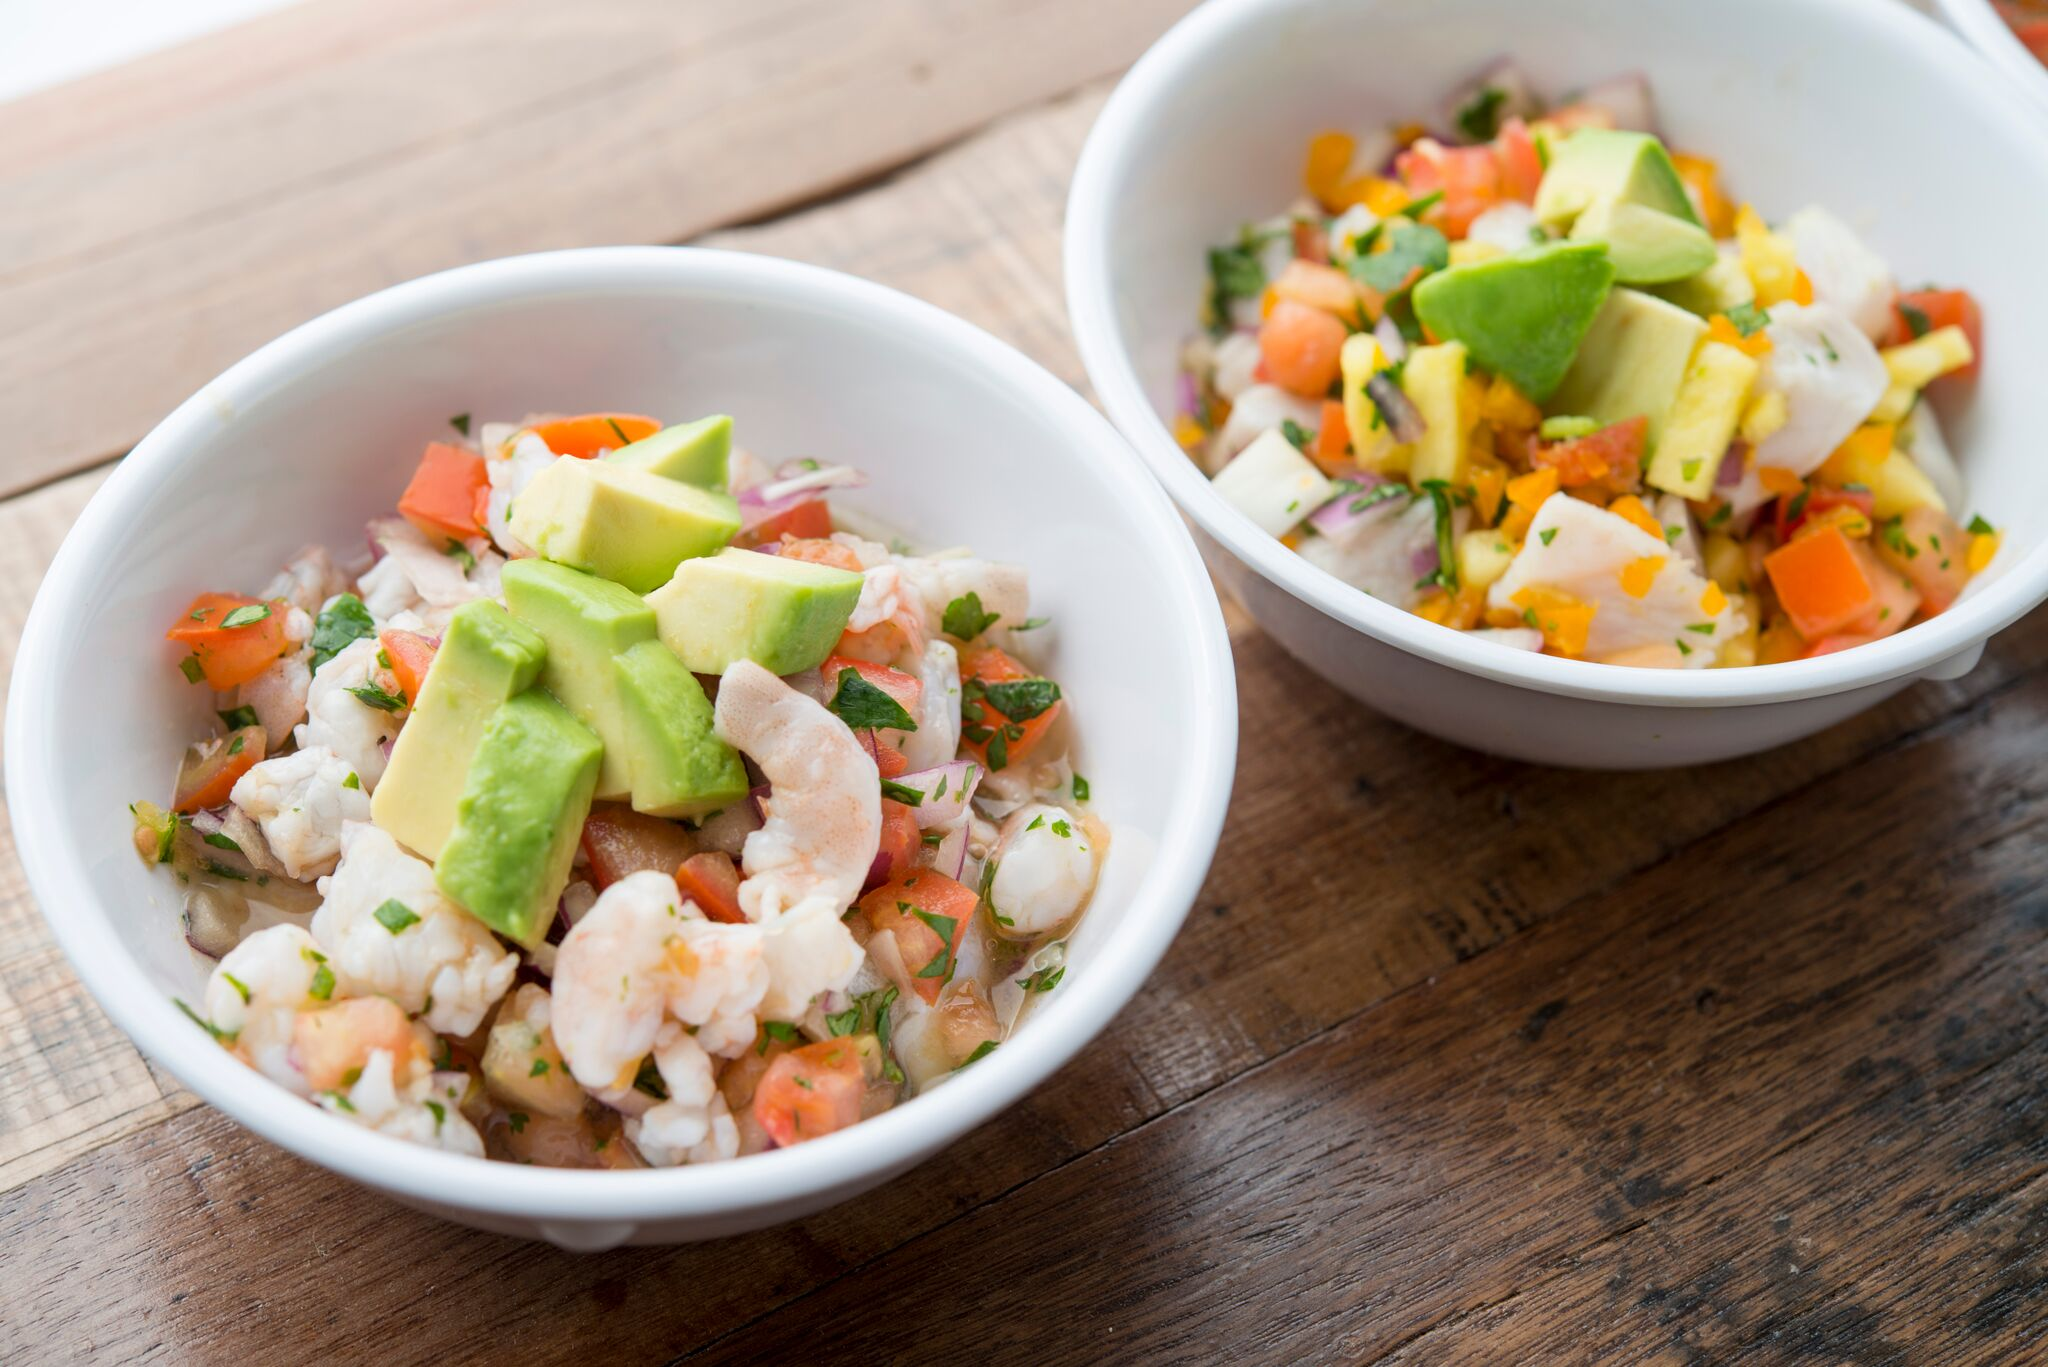 Ceviche and Poke bowls at MAR, located within 4th Street Market | photo courtesy of Anne Watson Photography